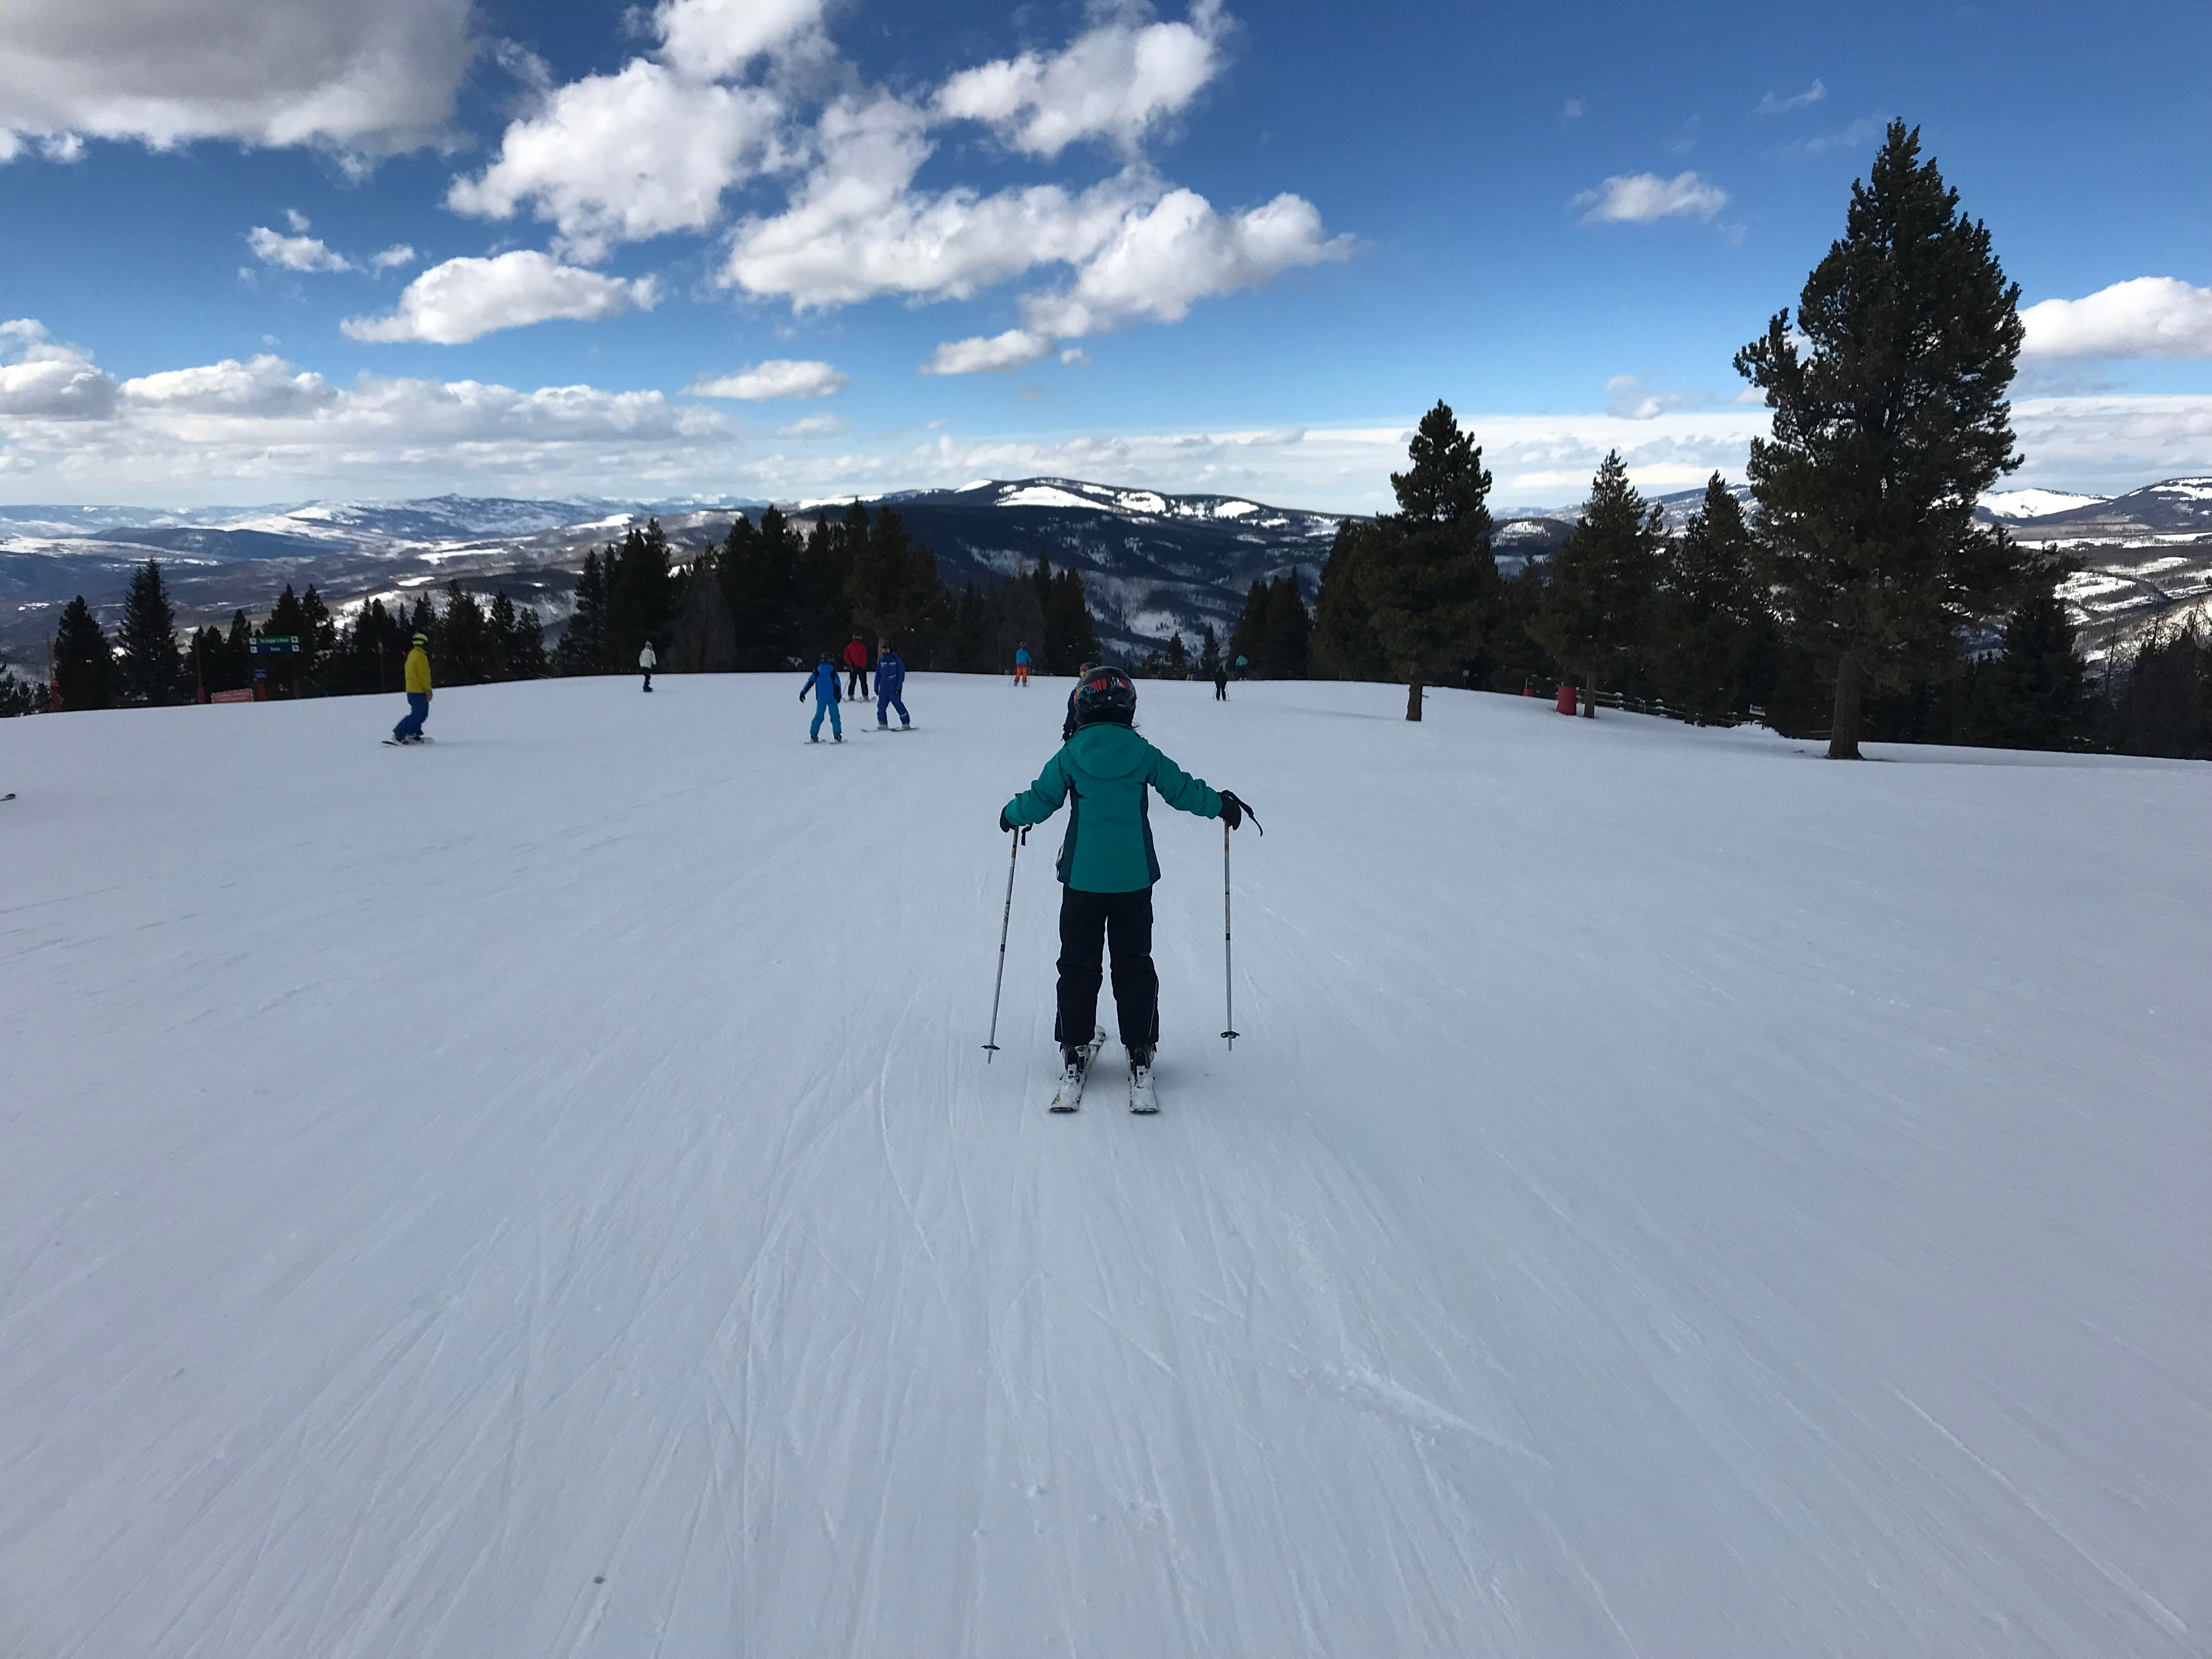 review of the new doubletree vail hilton hotel by a colorado skier